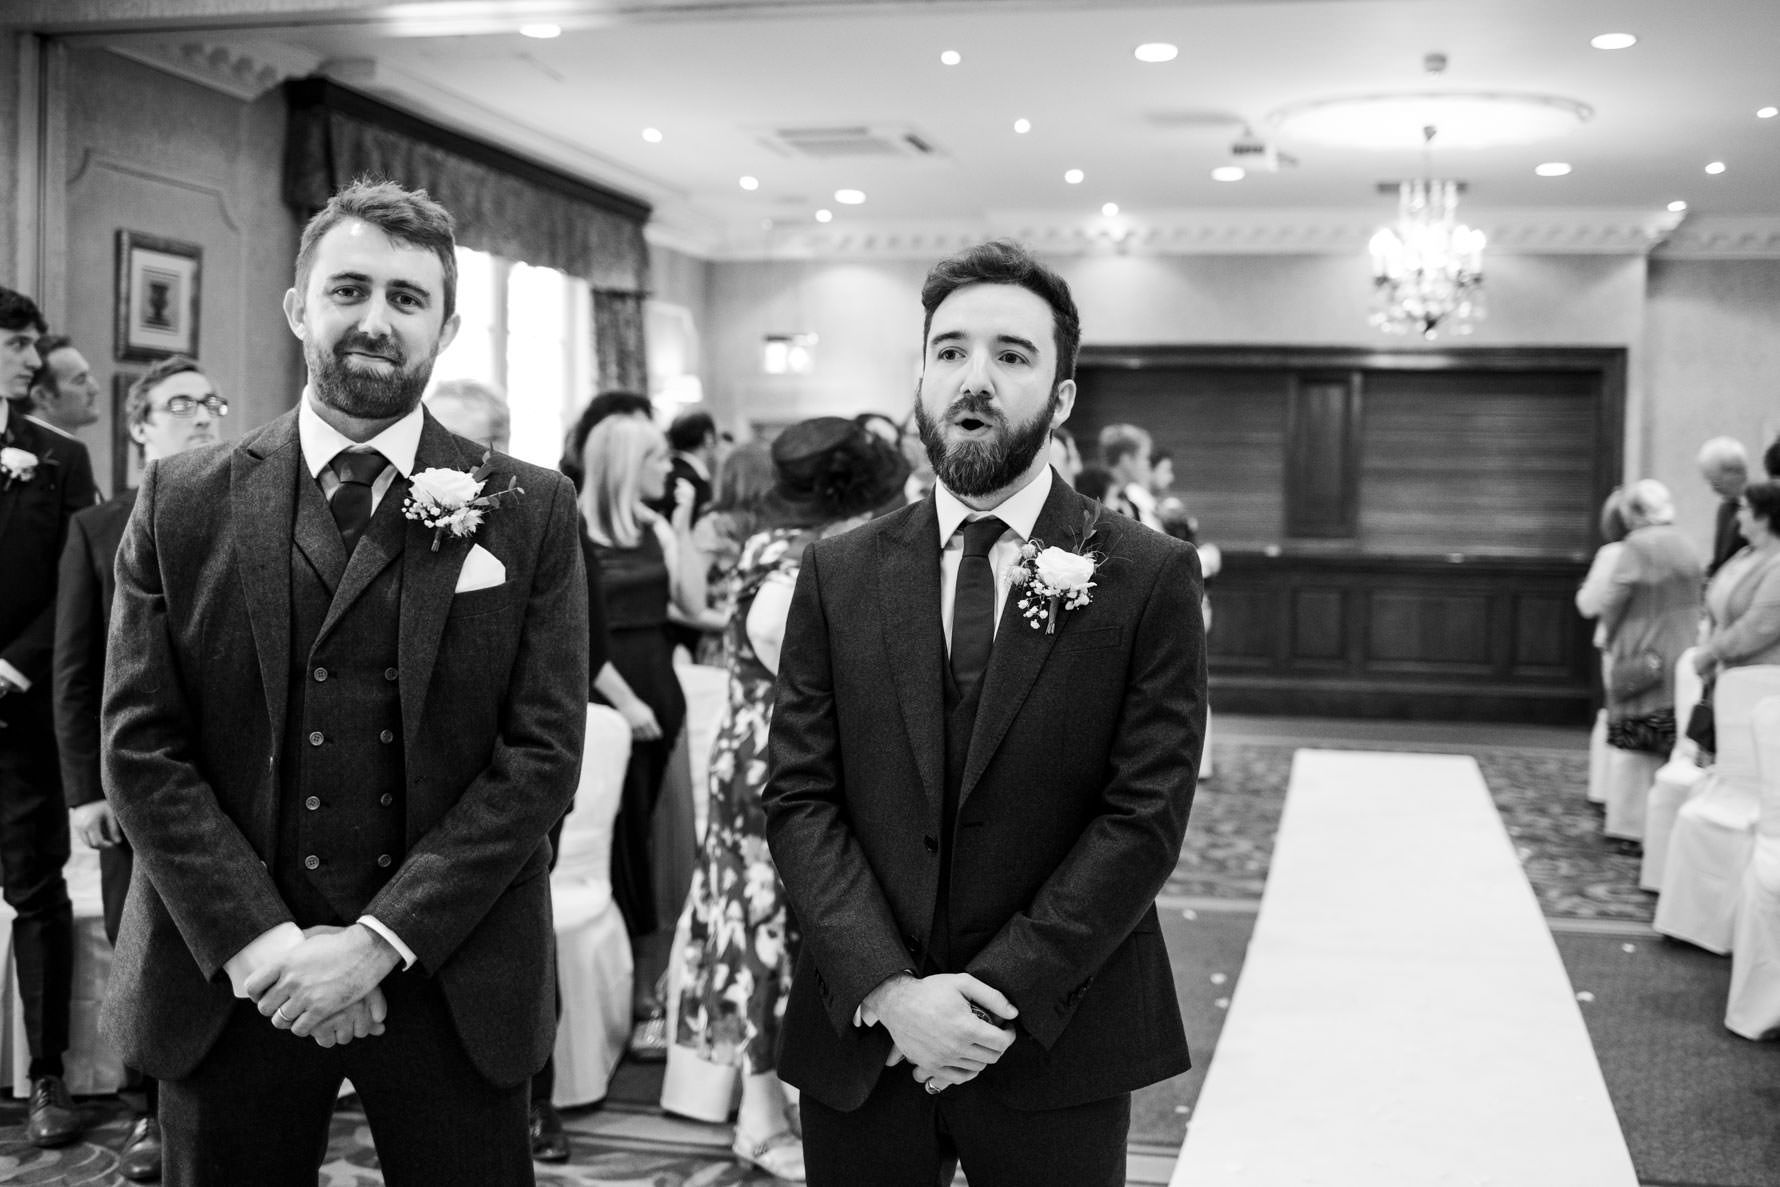 groom and best man waiting for bride in ceremony room